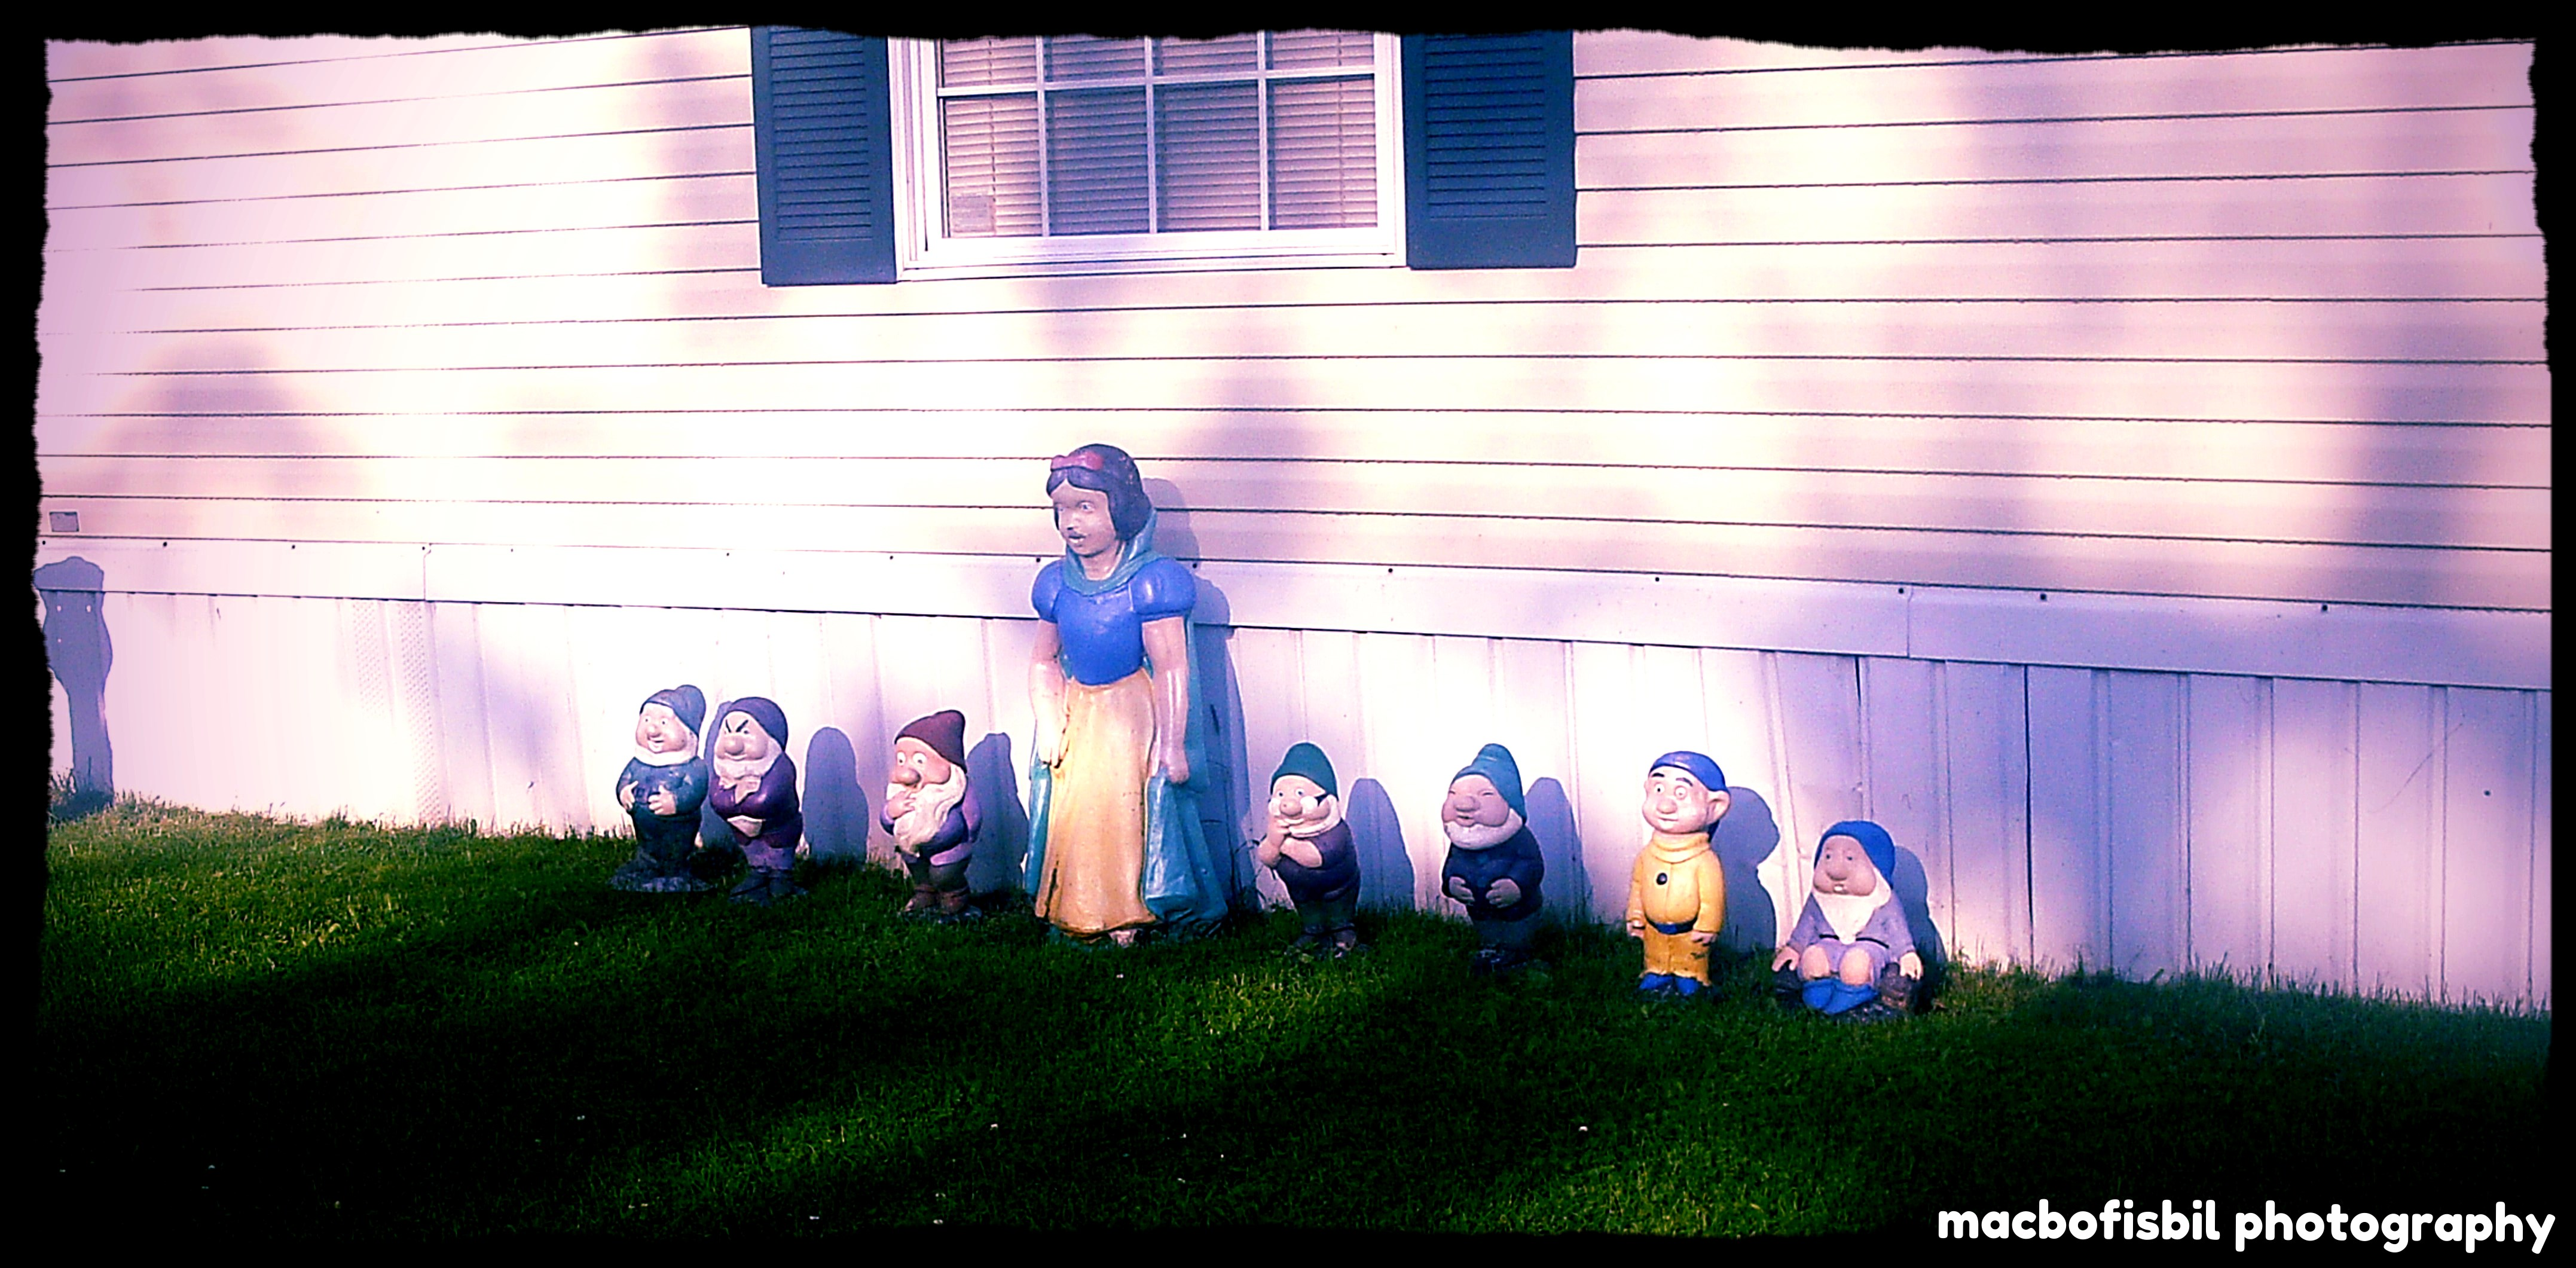 Day 286 - Snow White & the Seven Dwarves